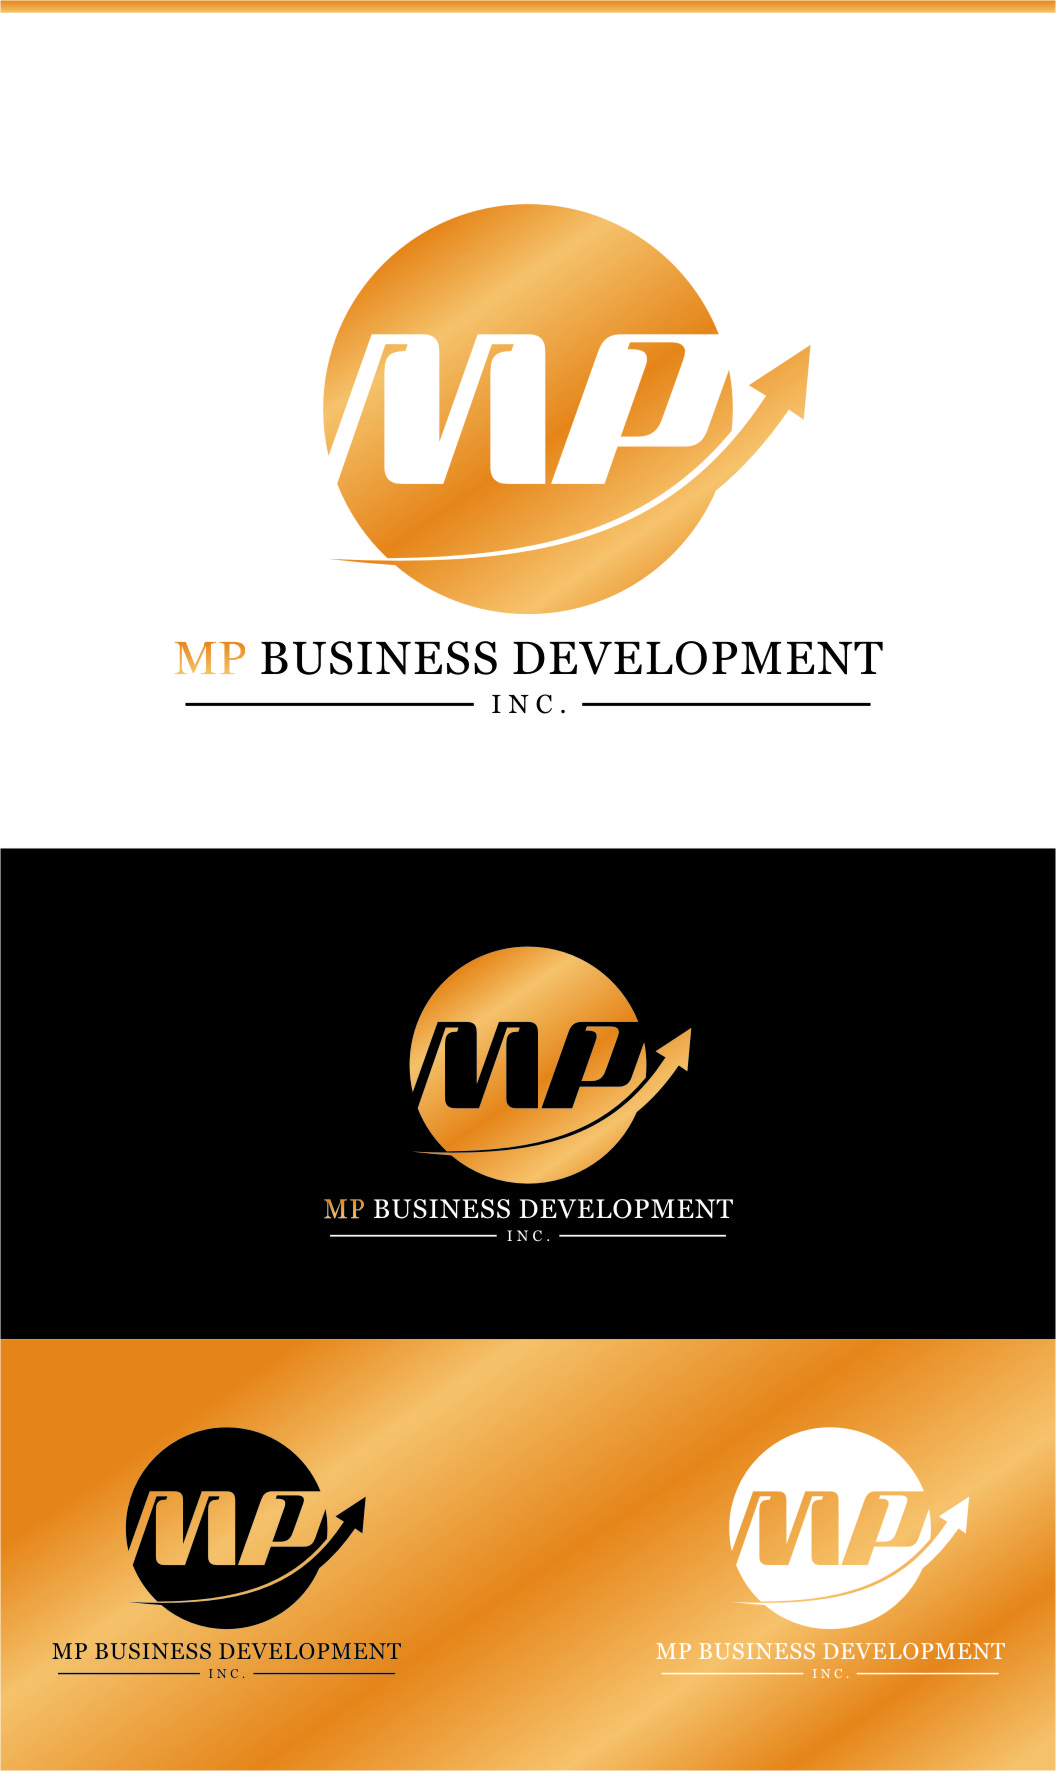 Logo Design by RasYa Muhammad Athaya - Entry No. 176 in the Logo Design Contest MP Business Development Inc. Logo Design.